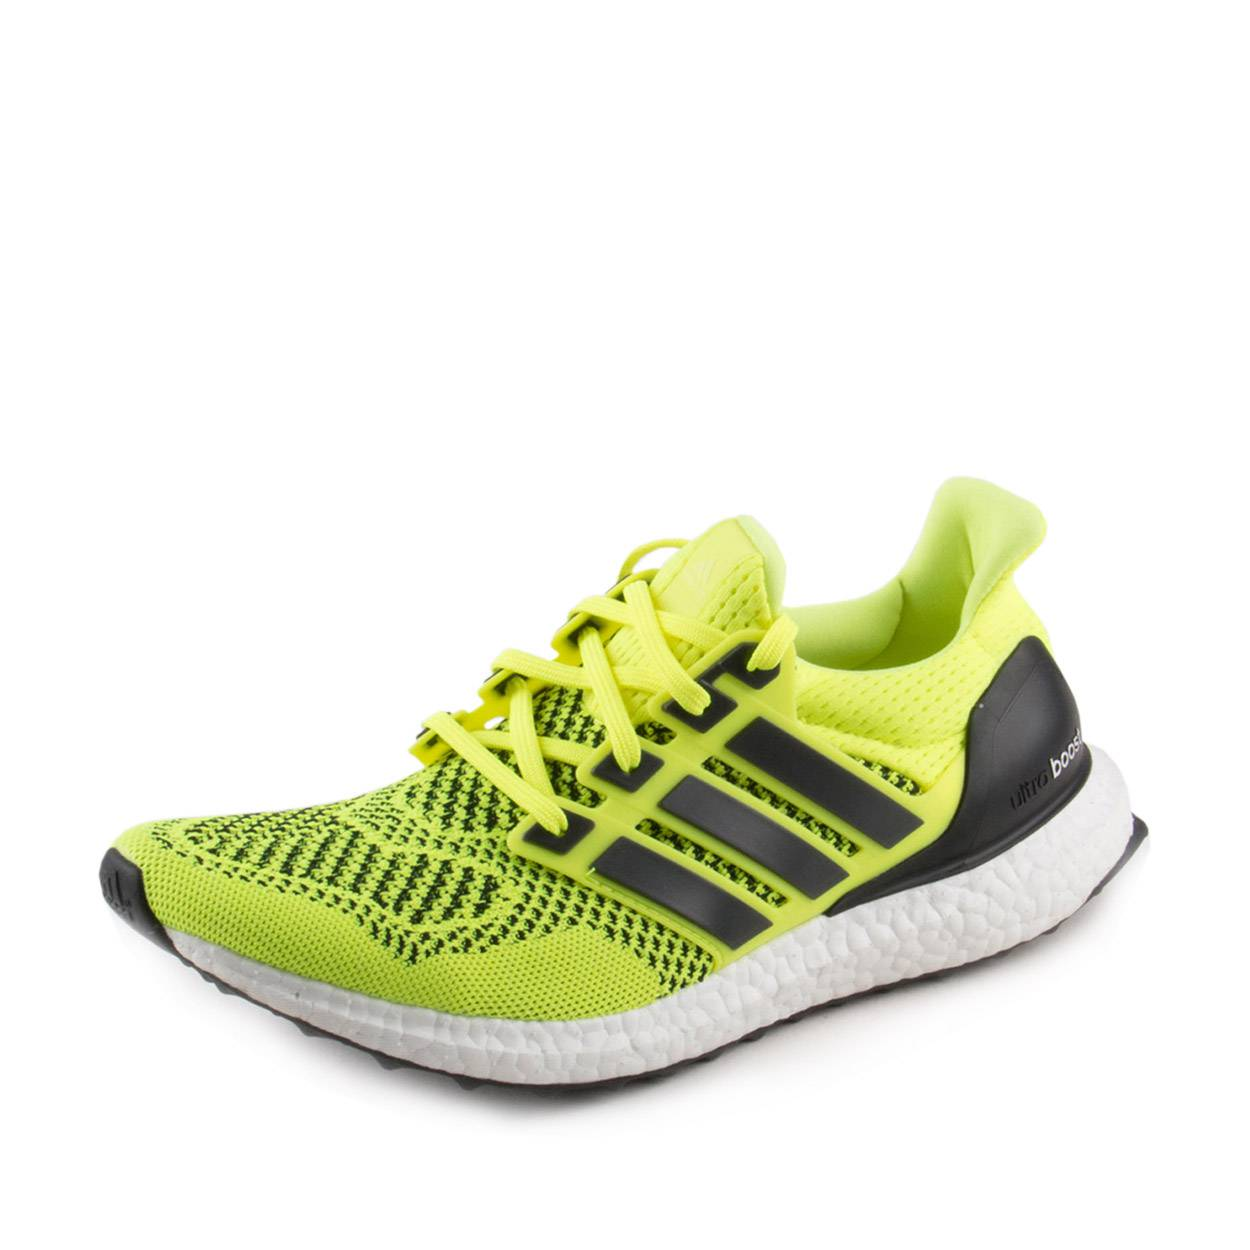 reputable site 1af7e b3fb4 Details about Adidas Mens Ultra boost 1.0 Neon Yellow Volt Black S77414  Size 8.5